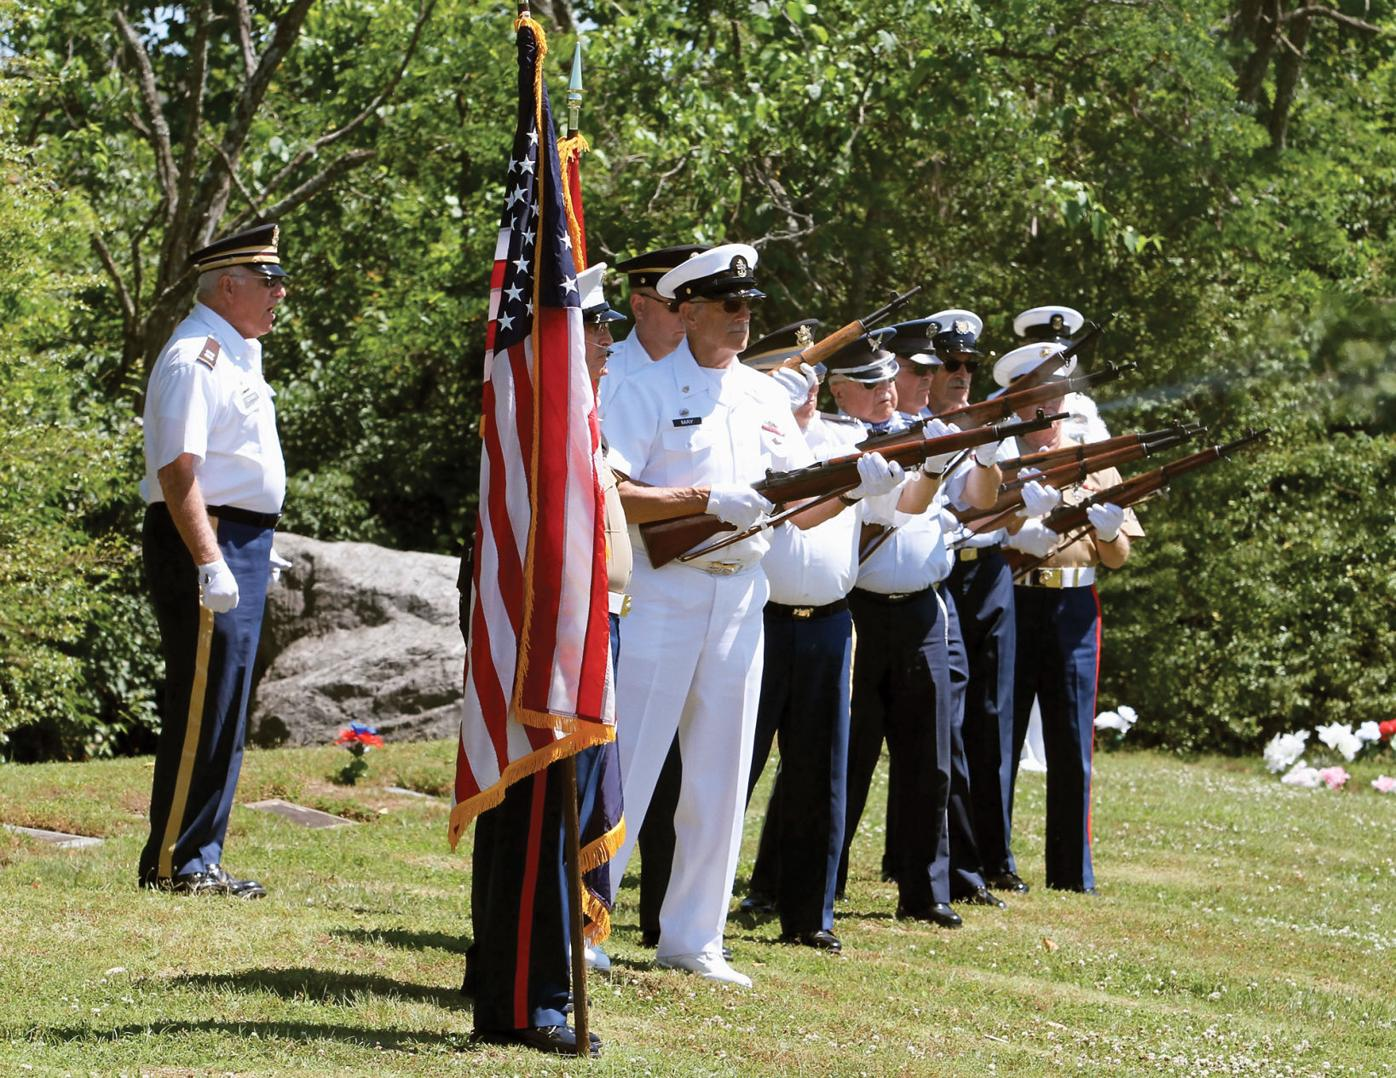 The East Tennessee Honor Guard fires a twenty-one gun salute